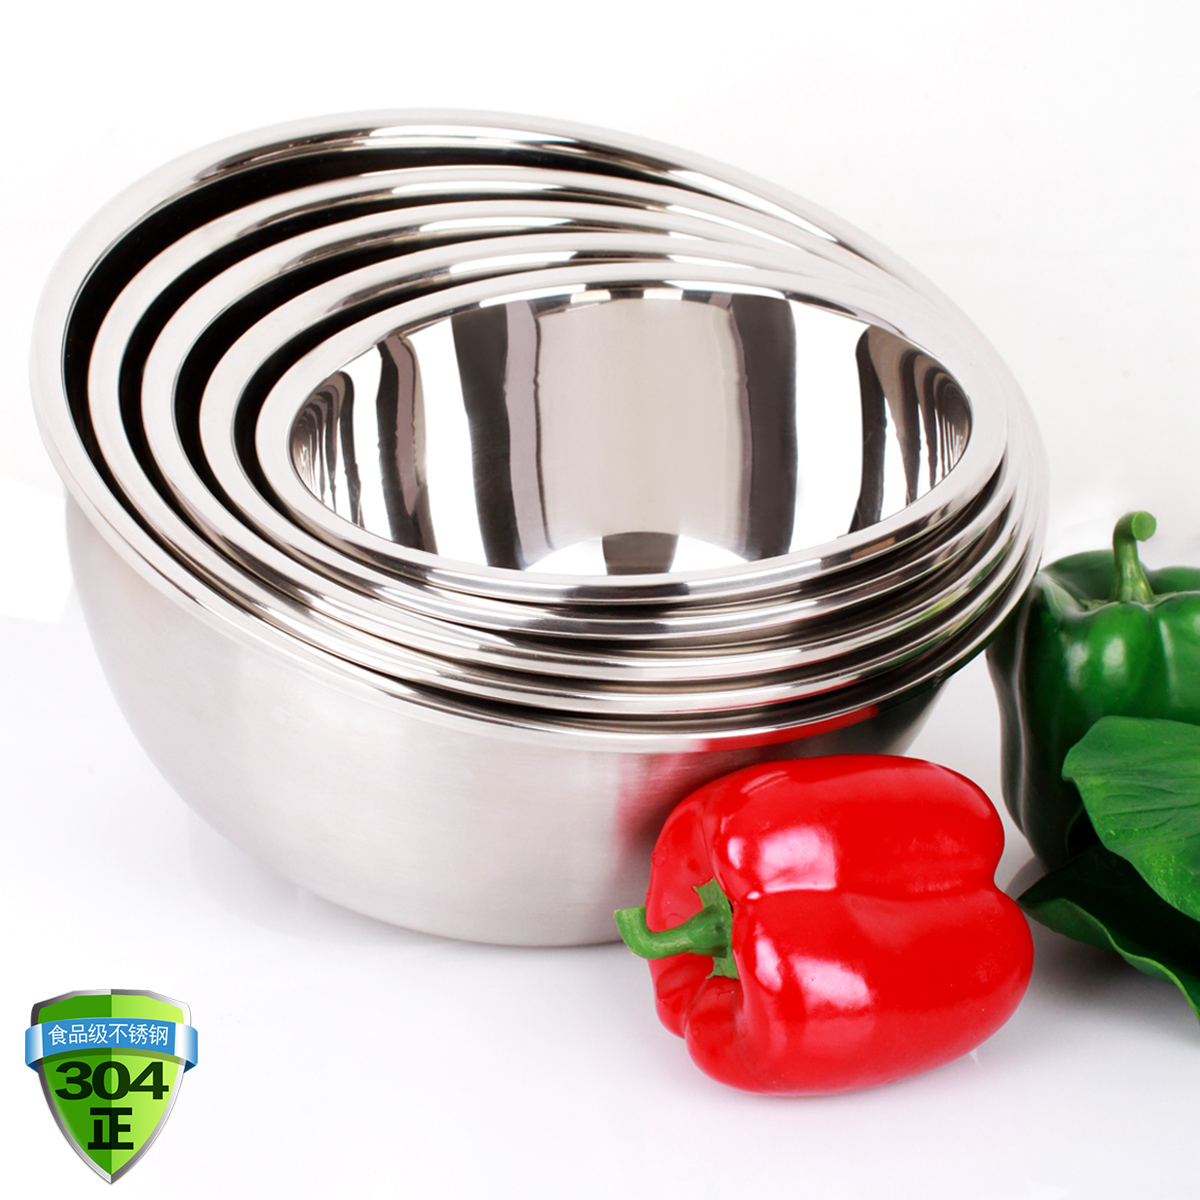 304 stainless steel basin deepened thick bucket bowl beat egg soup pots and pots seasoning vegetables basin basin